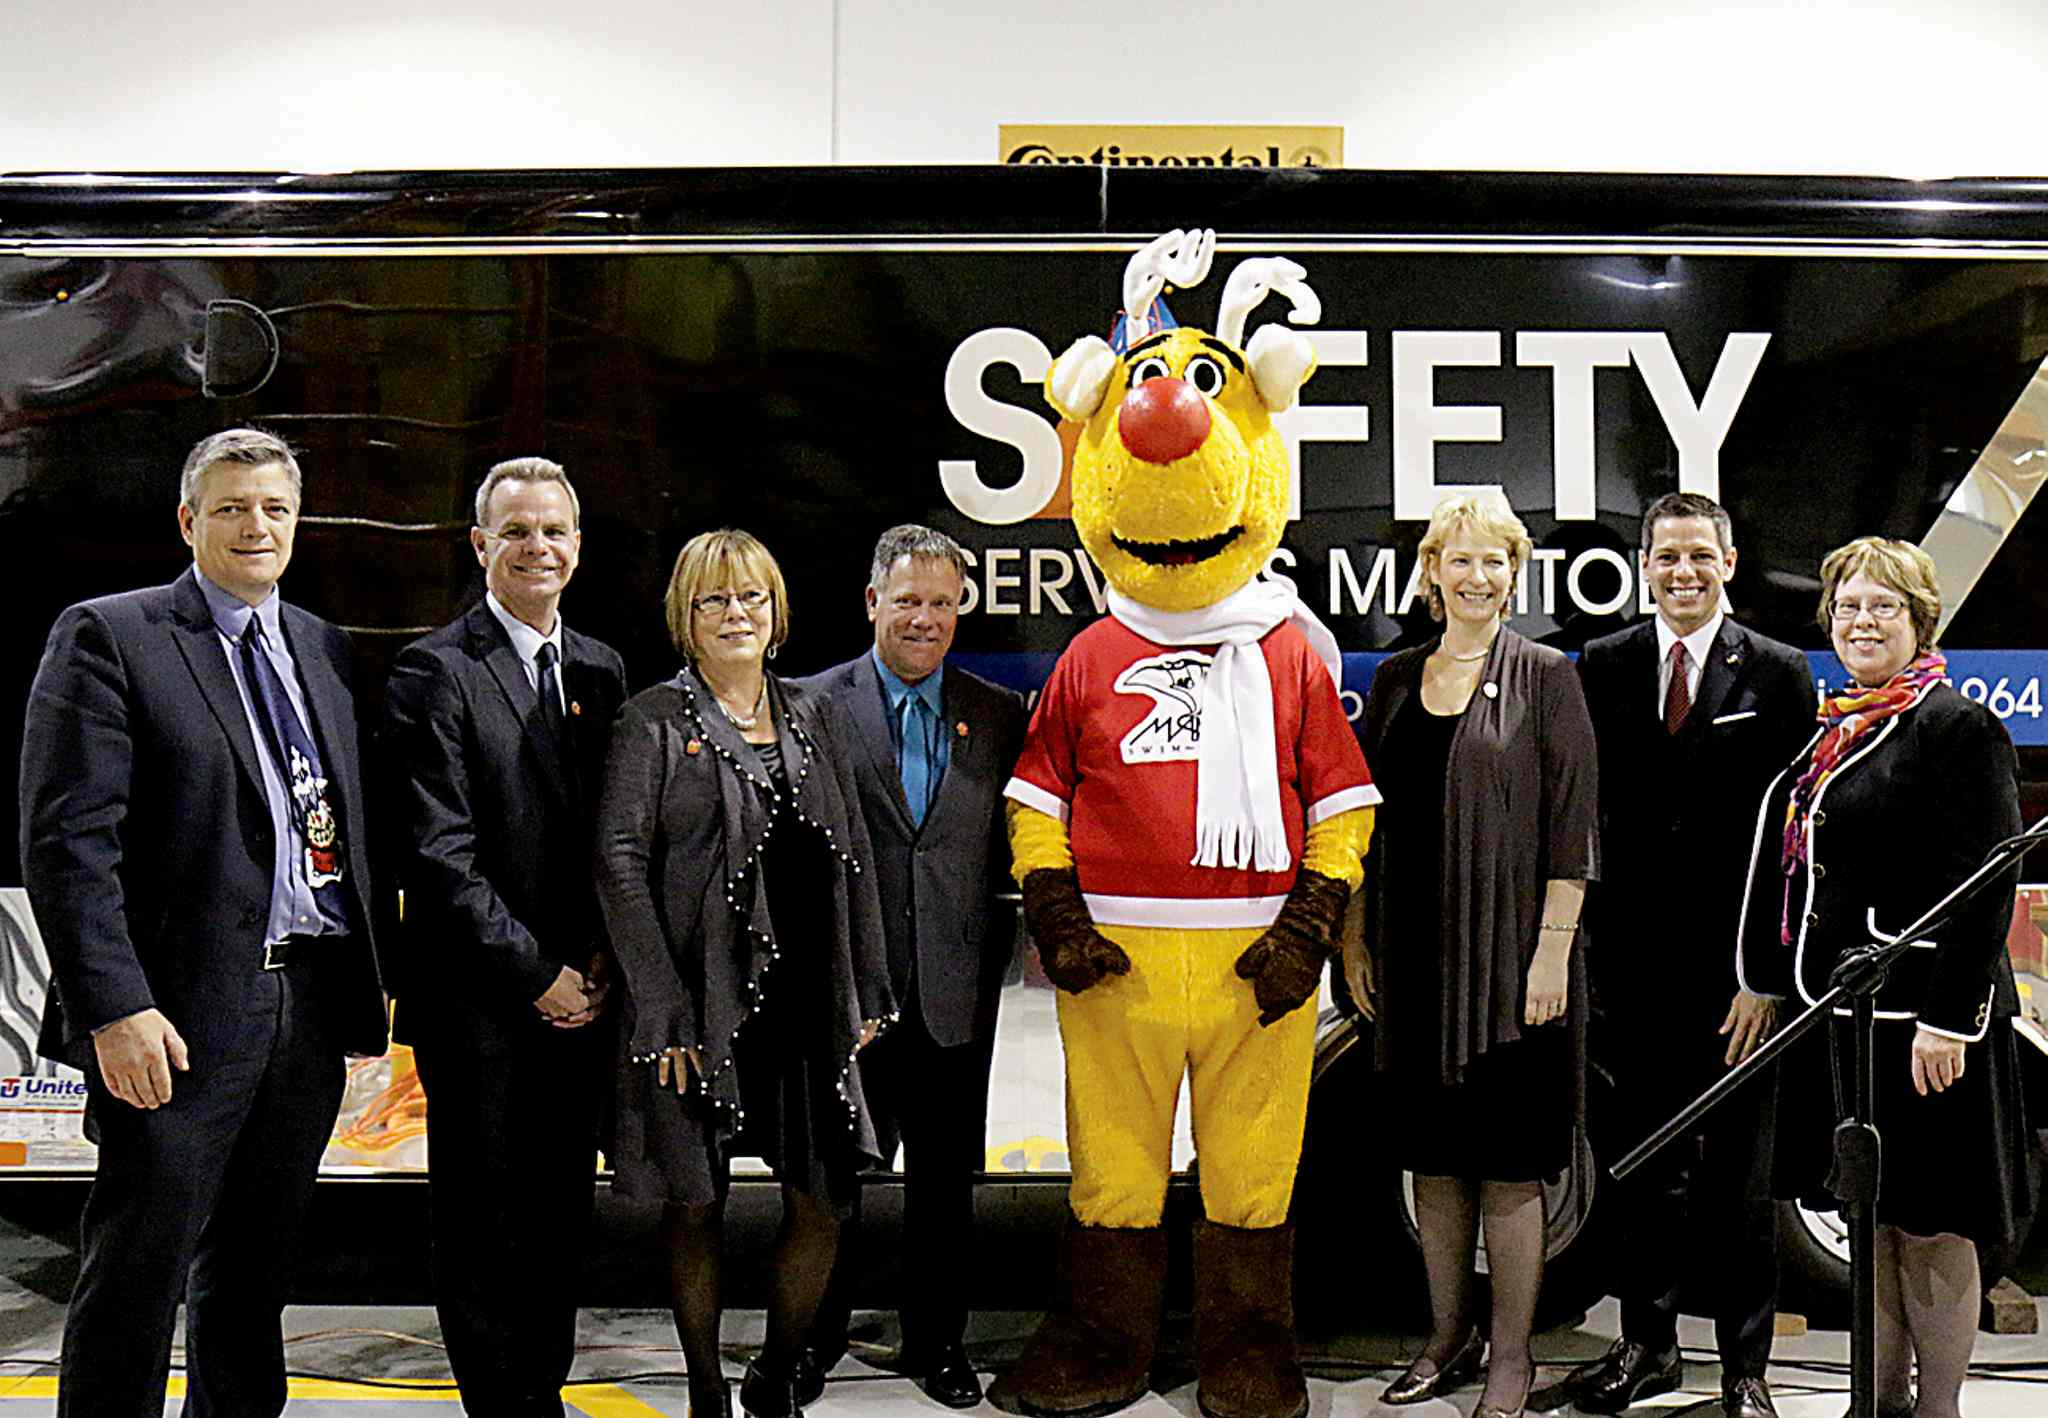 (From left) Scott Thomson, president and CEO of Manitoba Hydro, James Allum, MLA for Fort Garry-Riverview, Bev Mehmel, director, corporate social responsibility at Manitoba Liquor & Lotteries, Ward Keith, executive director, driver safety, DVA administration and registrar of motor vehicles at Manitoba Public Insurance, Operation Red Nose mascot Rudy, Guylaine Beaupré, executive director of Opération Nez Rouge National, Mayor Brian Bowman and Judy Murphy, president and CEO of Safety Services Manitoba.